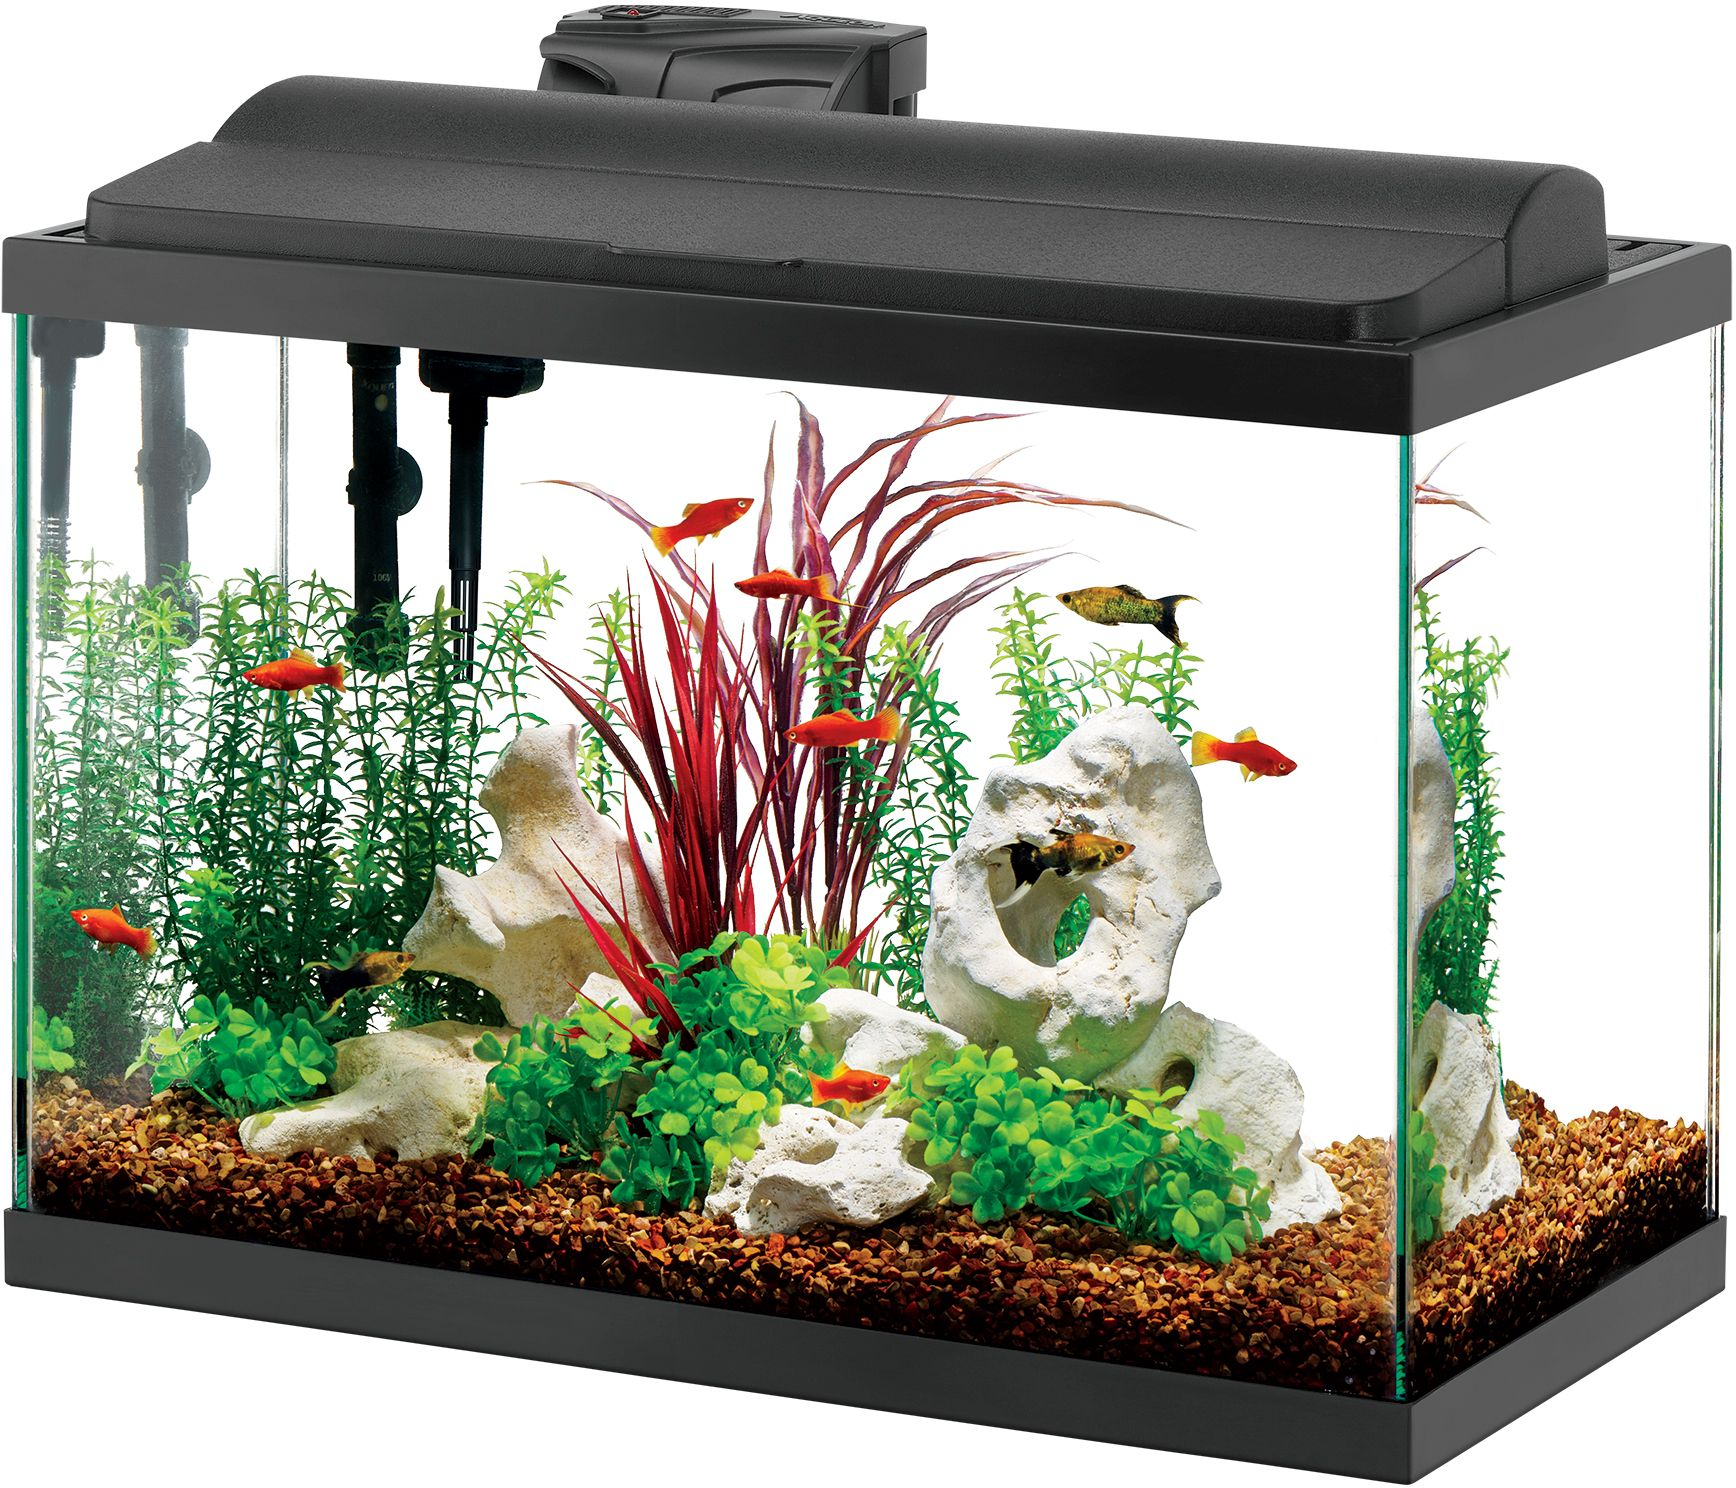 Aqueon deluxe led aquarium kit black 20 gallon ebay for Aqueon fish tank